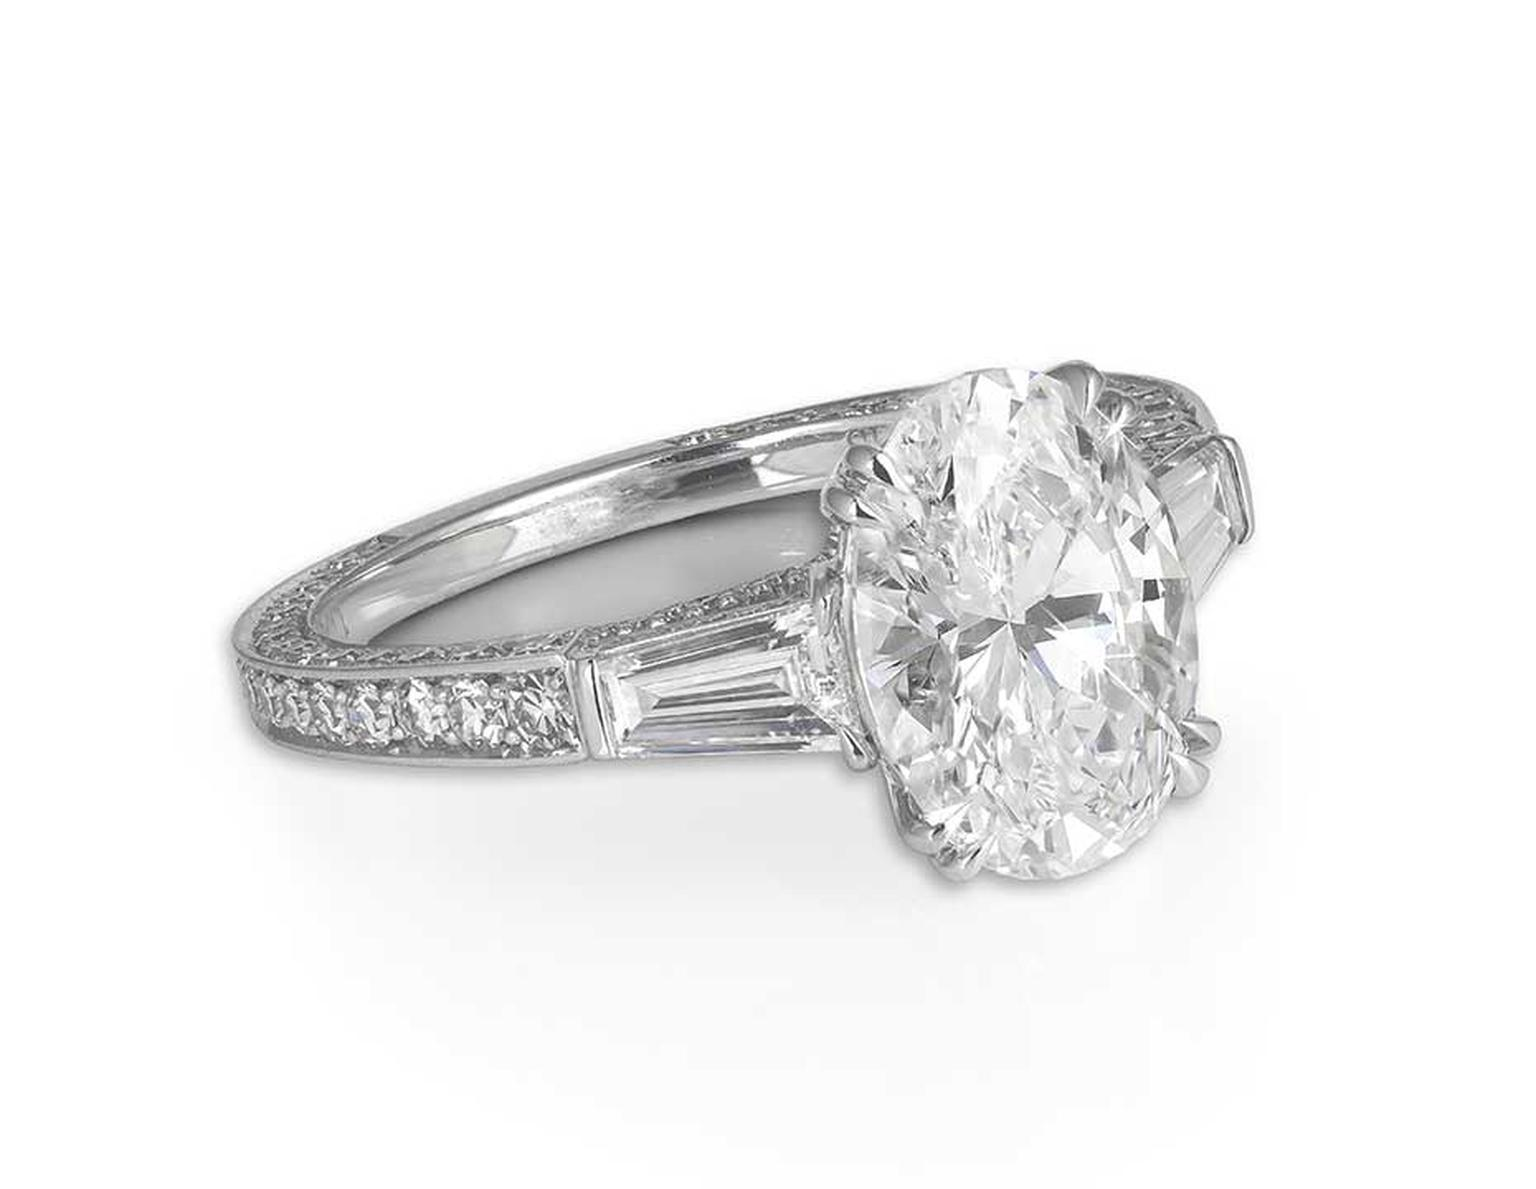 301170 events service, paired with David Morris' oval and baguette-cut diamond engagement ring